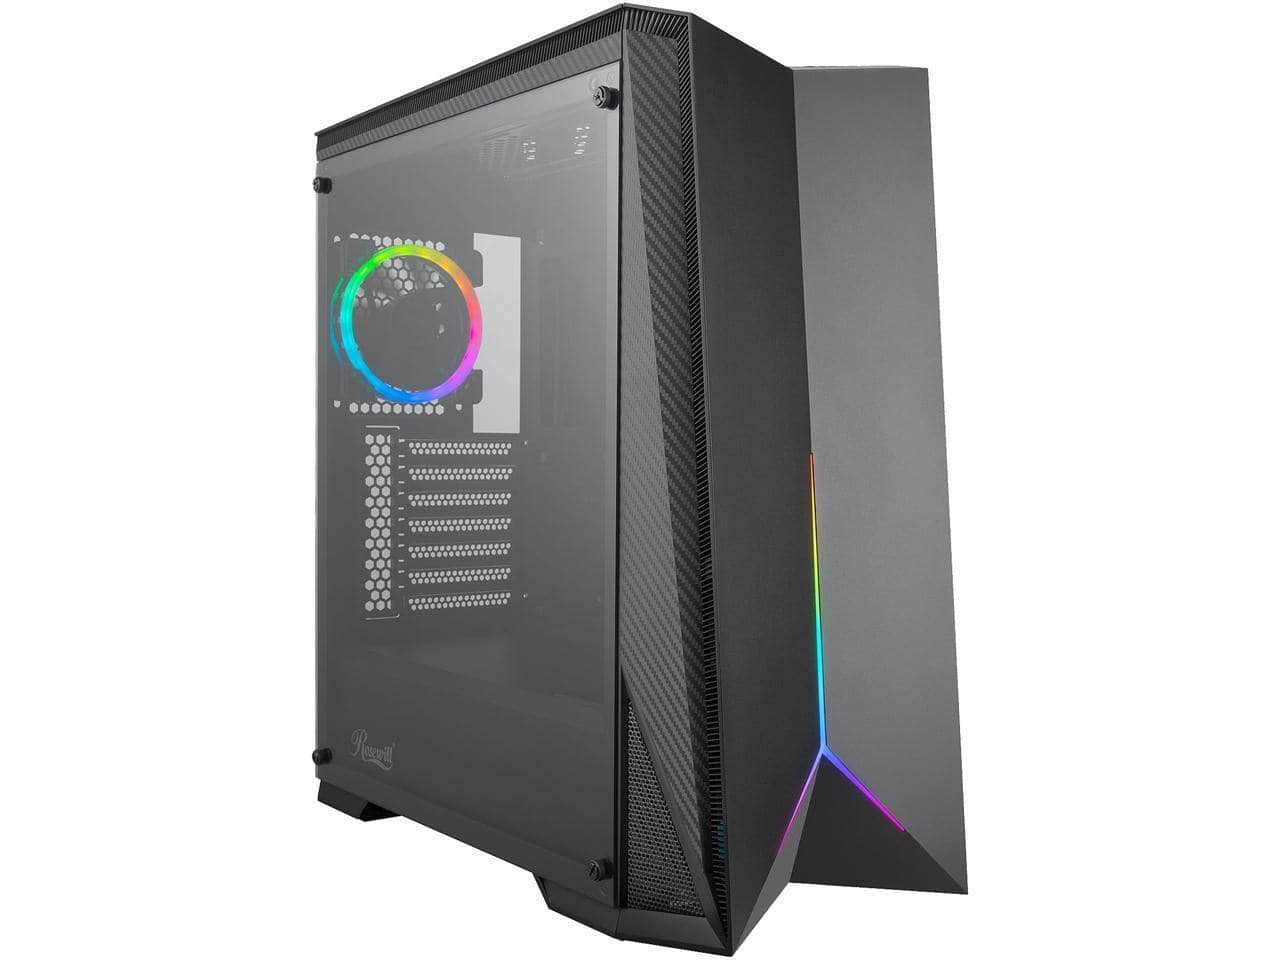 Rosewill ATX Mid Tower Gaming PC Computer Case with RGB Fan & LED Light Strip for $49.99 Shipped